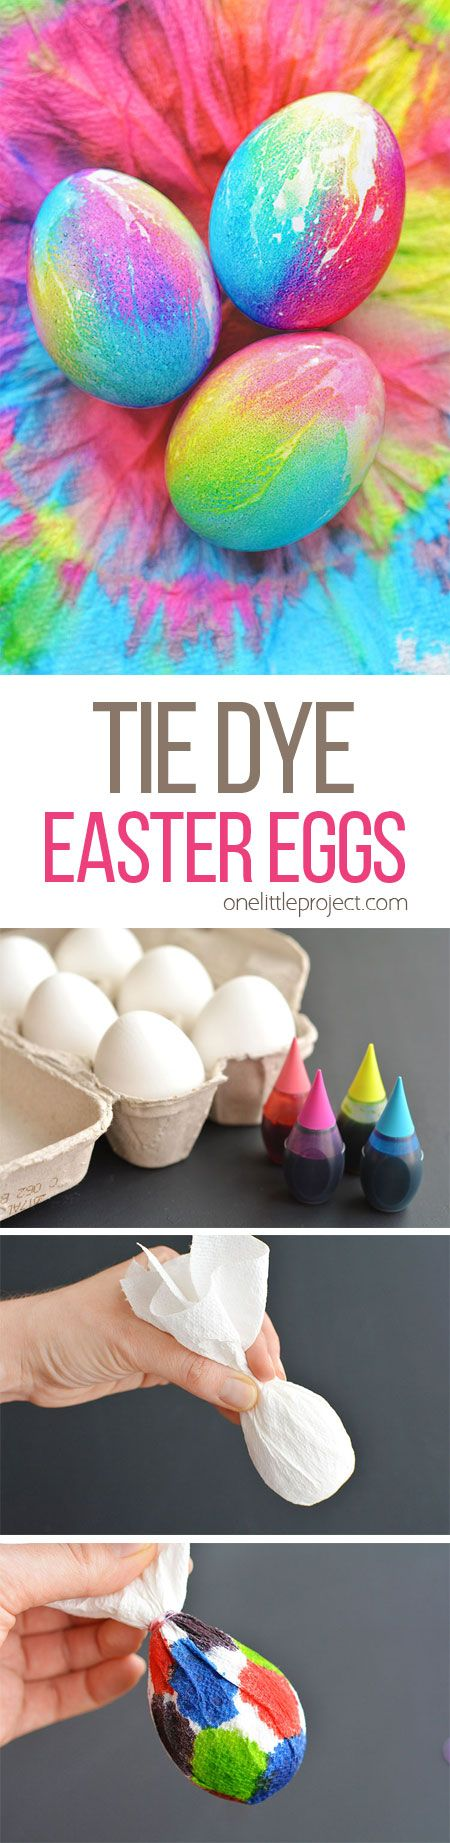 These tie dye Easter eggs are SO FUN and they're so simple to make! The colours are bright and beautiful and the eggs are completely safe to eat!: